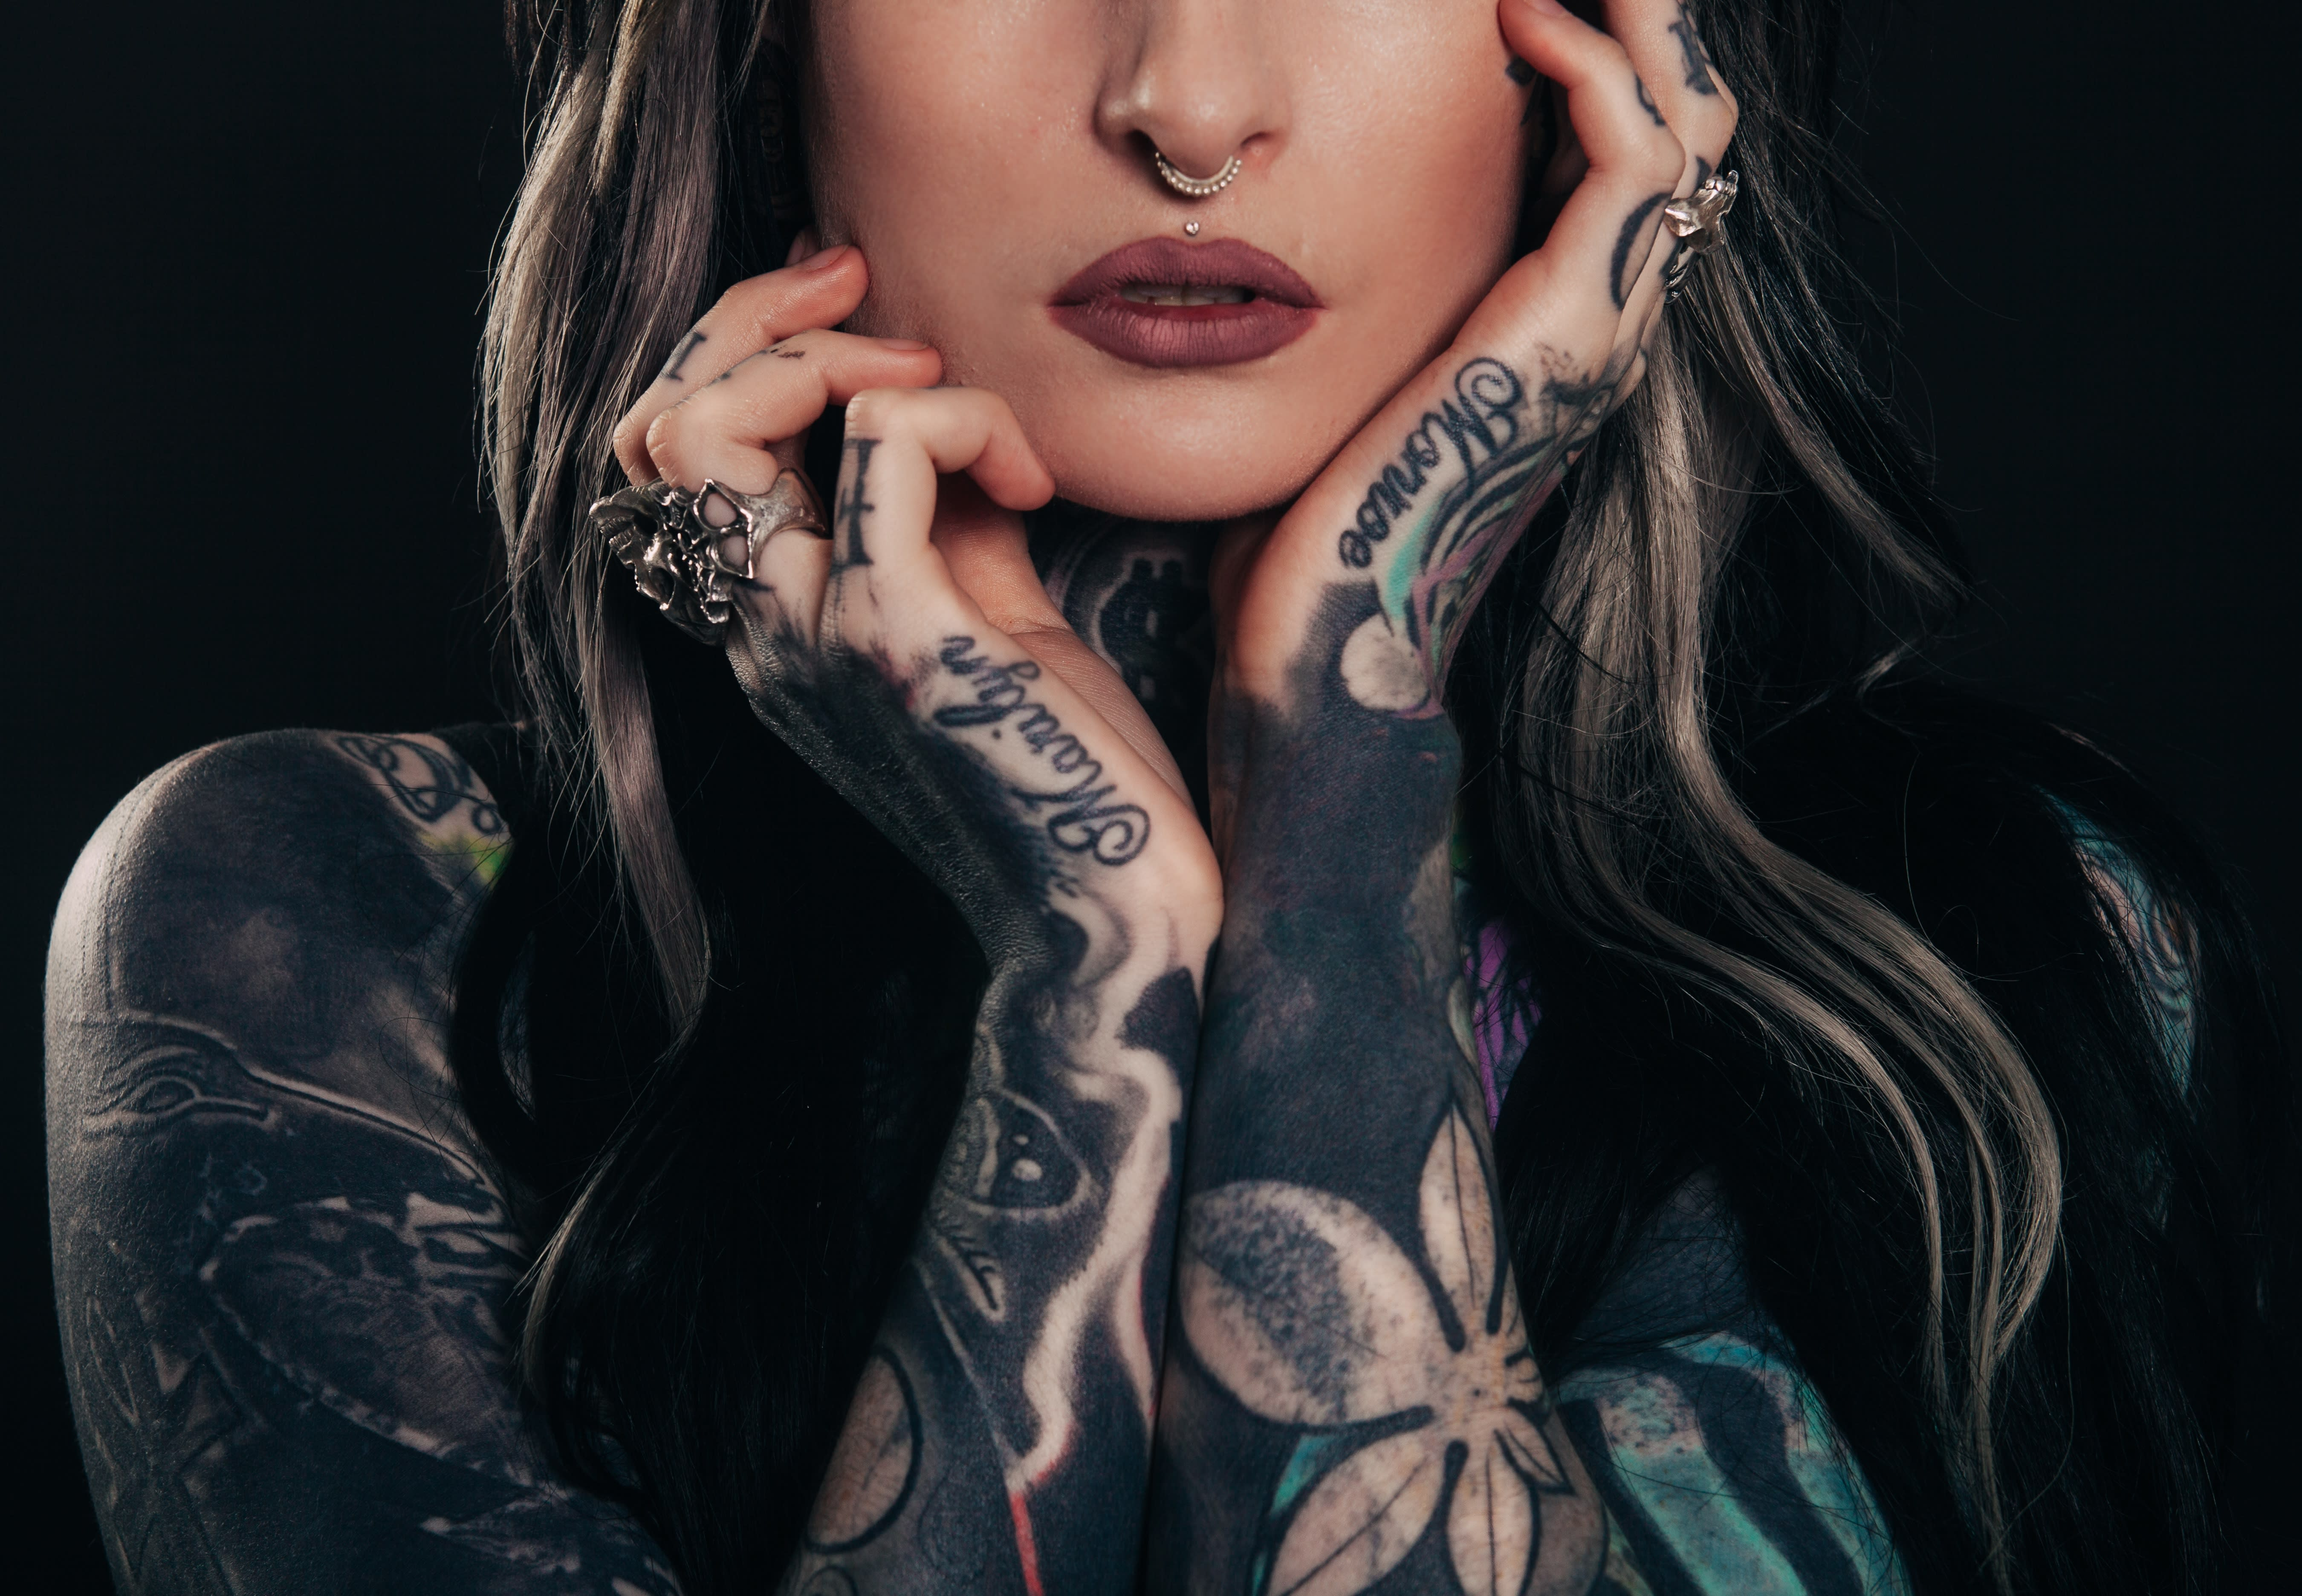 Tattoo'd Girl with hands on chin.